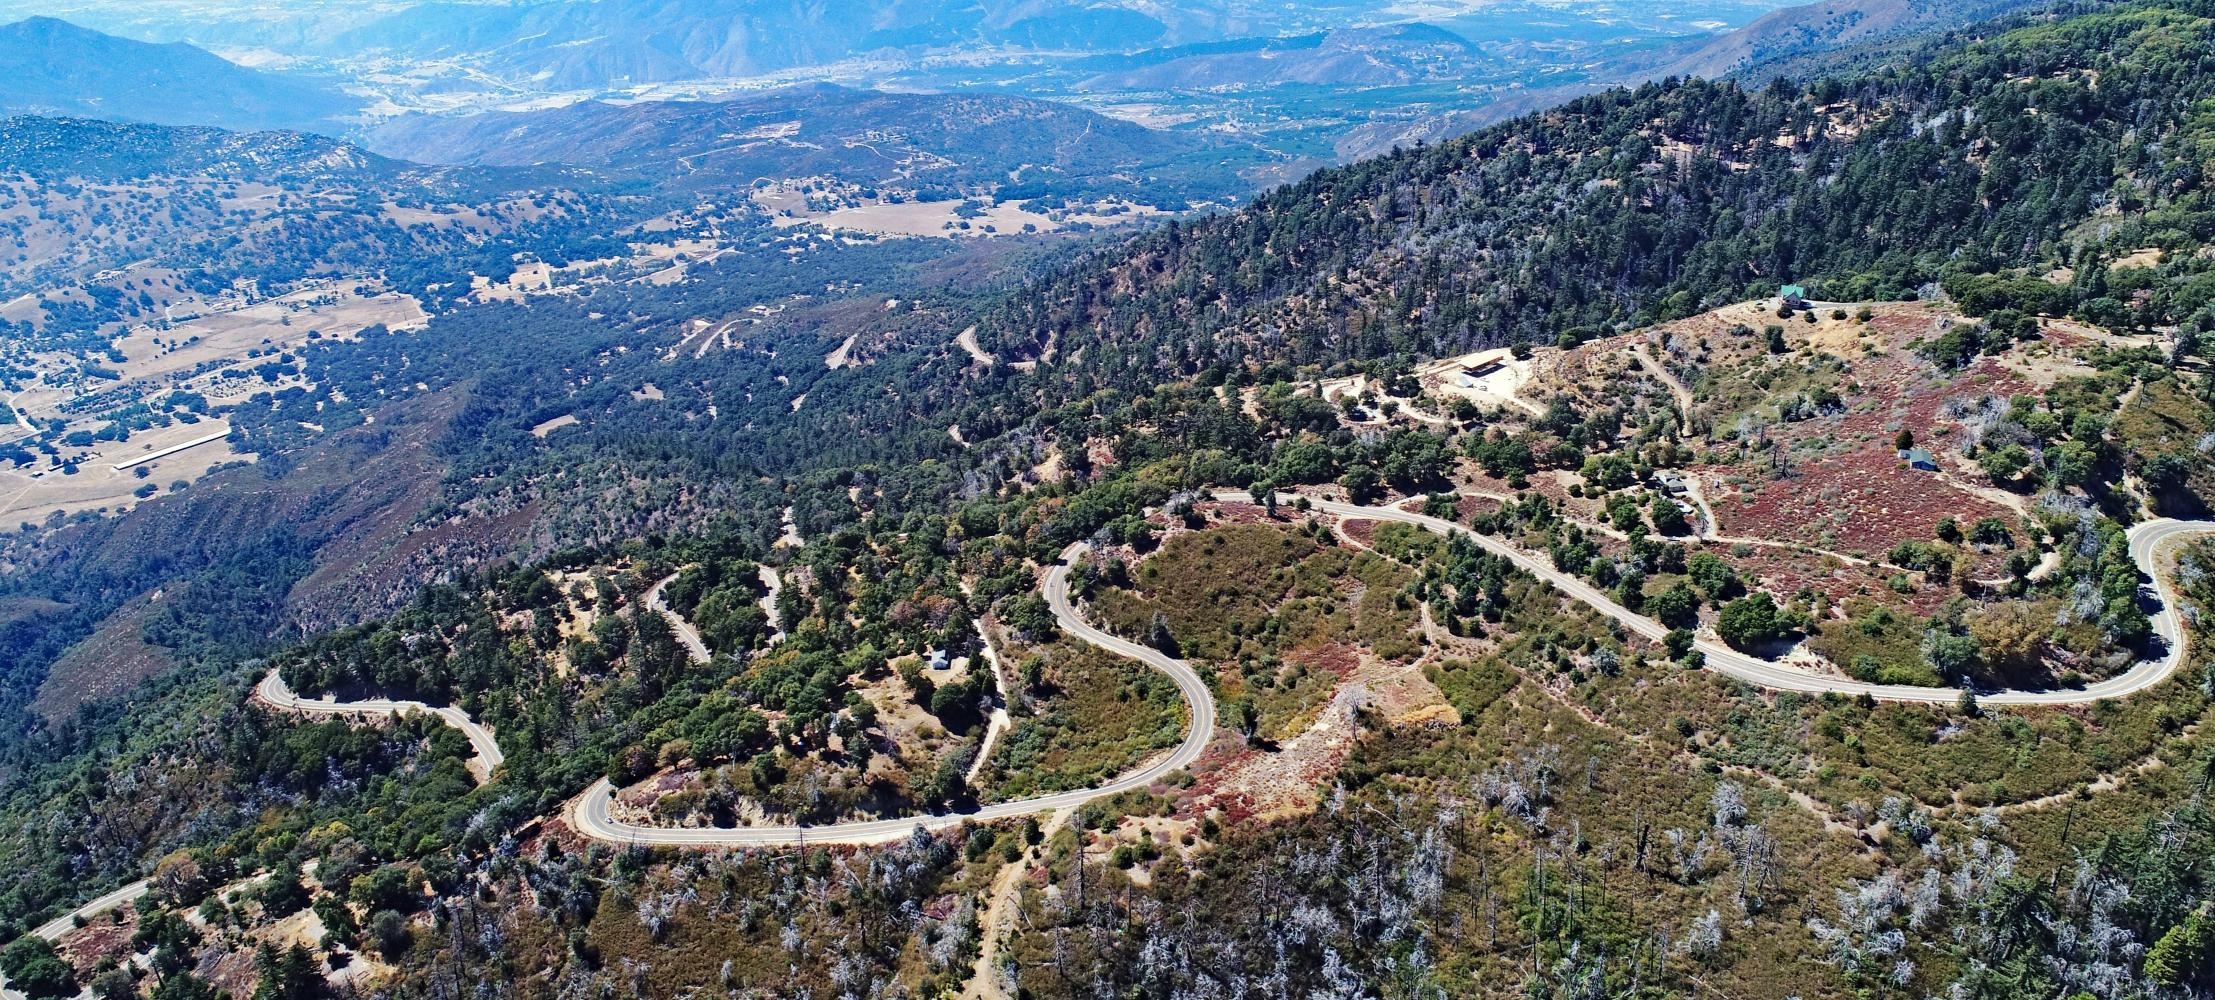 Palomar Mountain South Grade Bike Climb - PJAMM Cycling